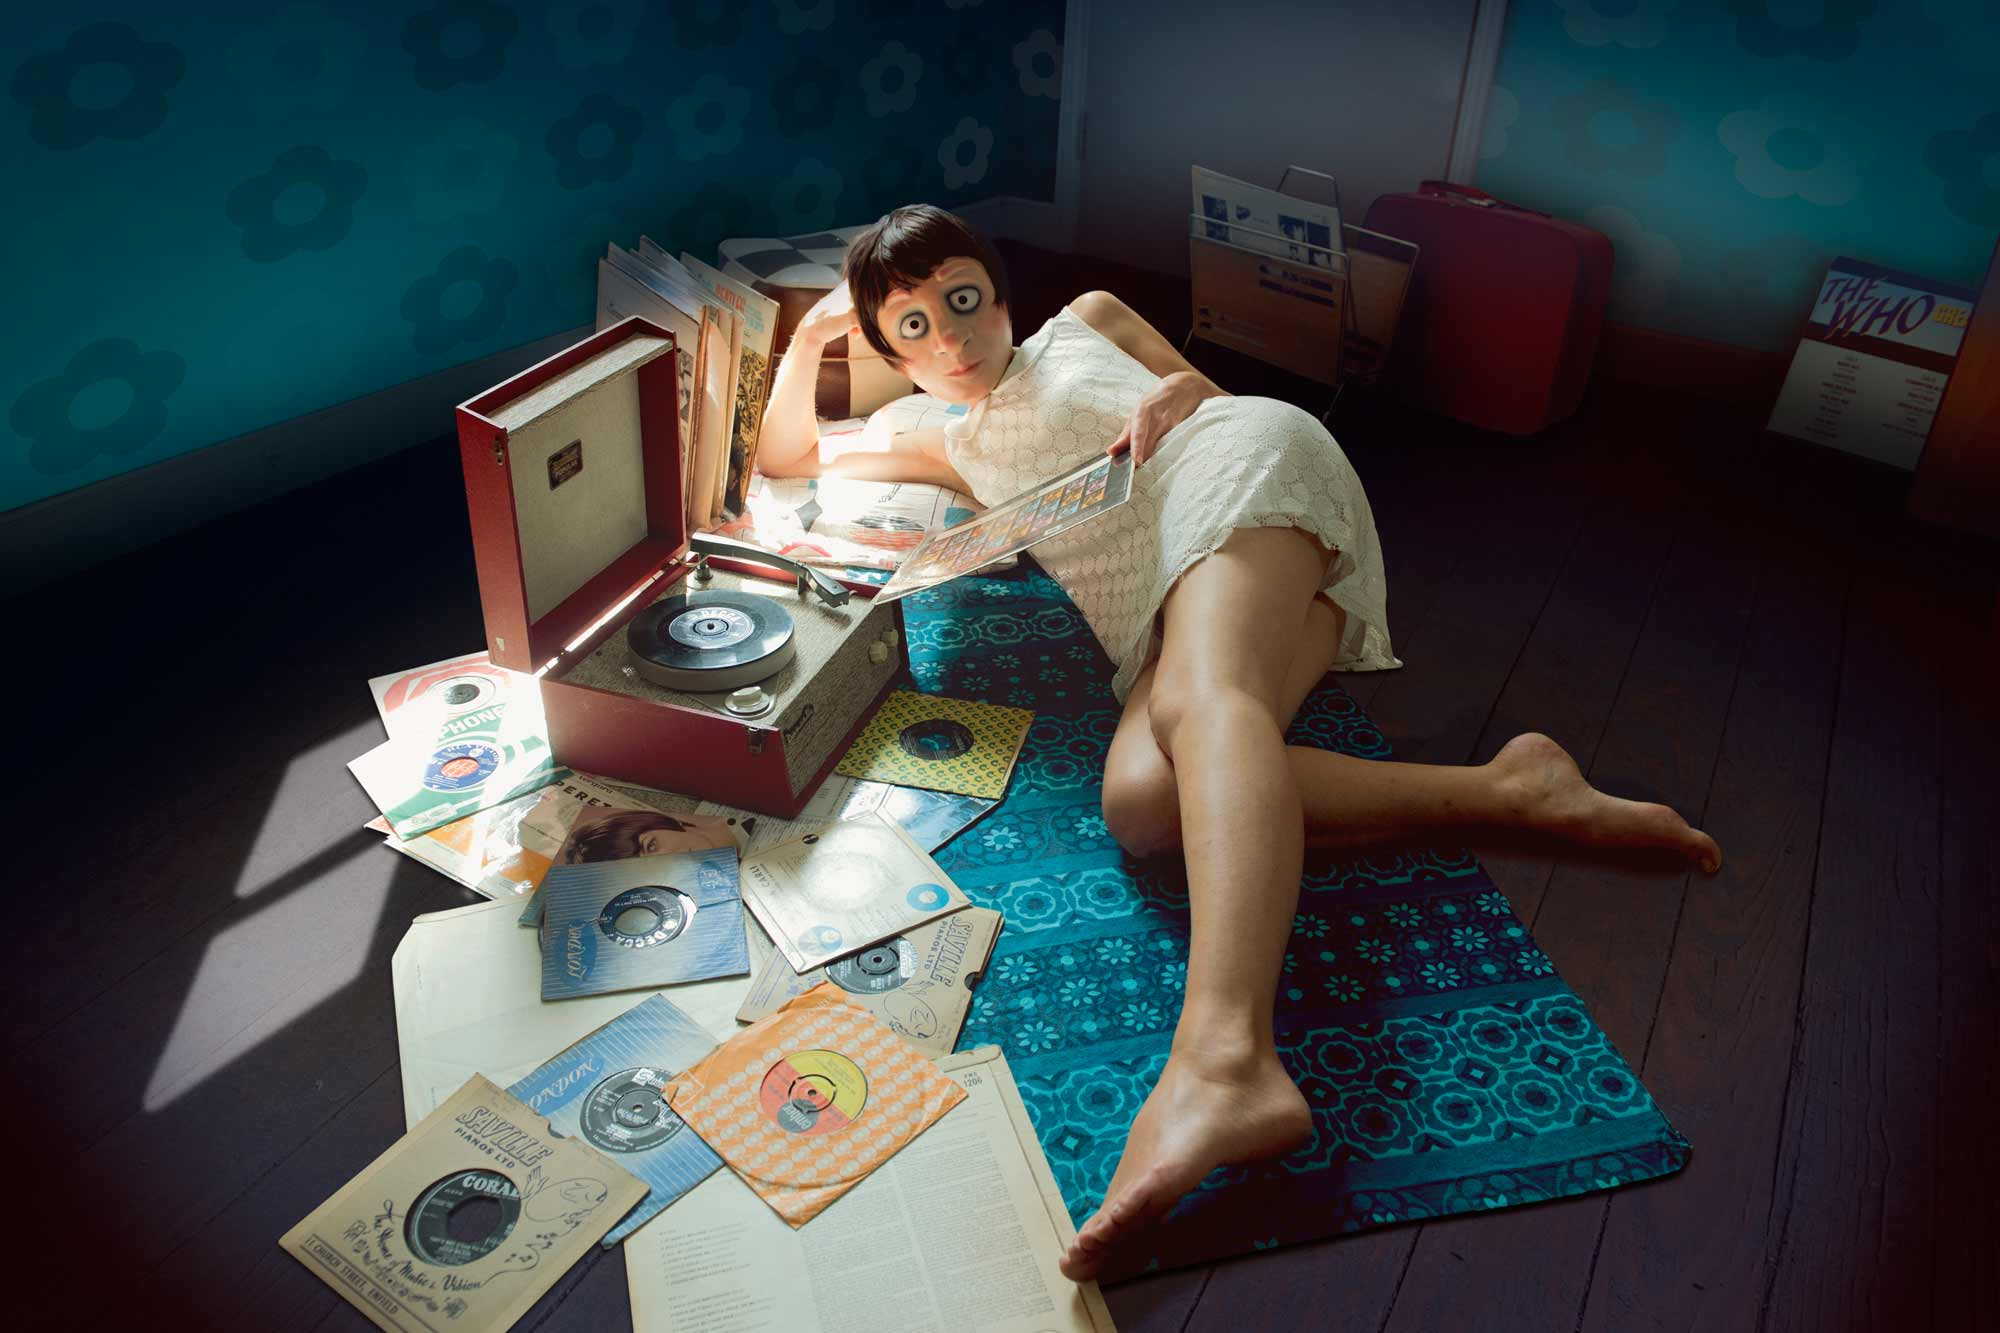 Susan and the record player